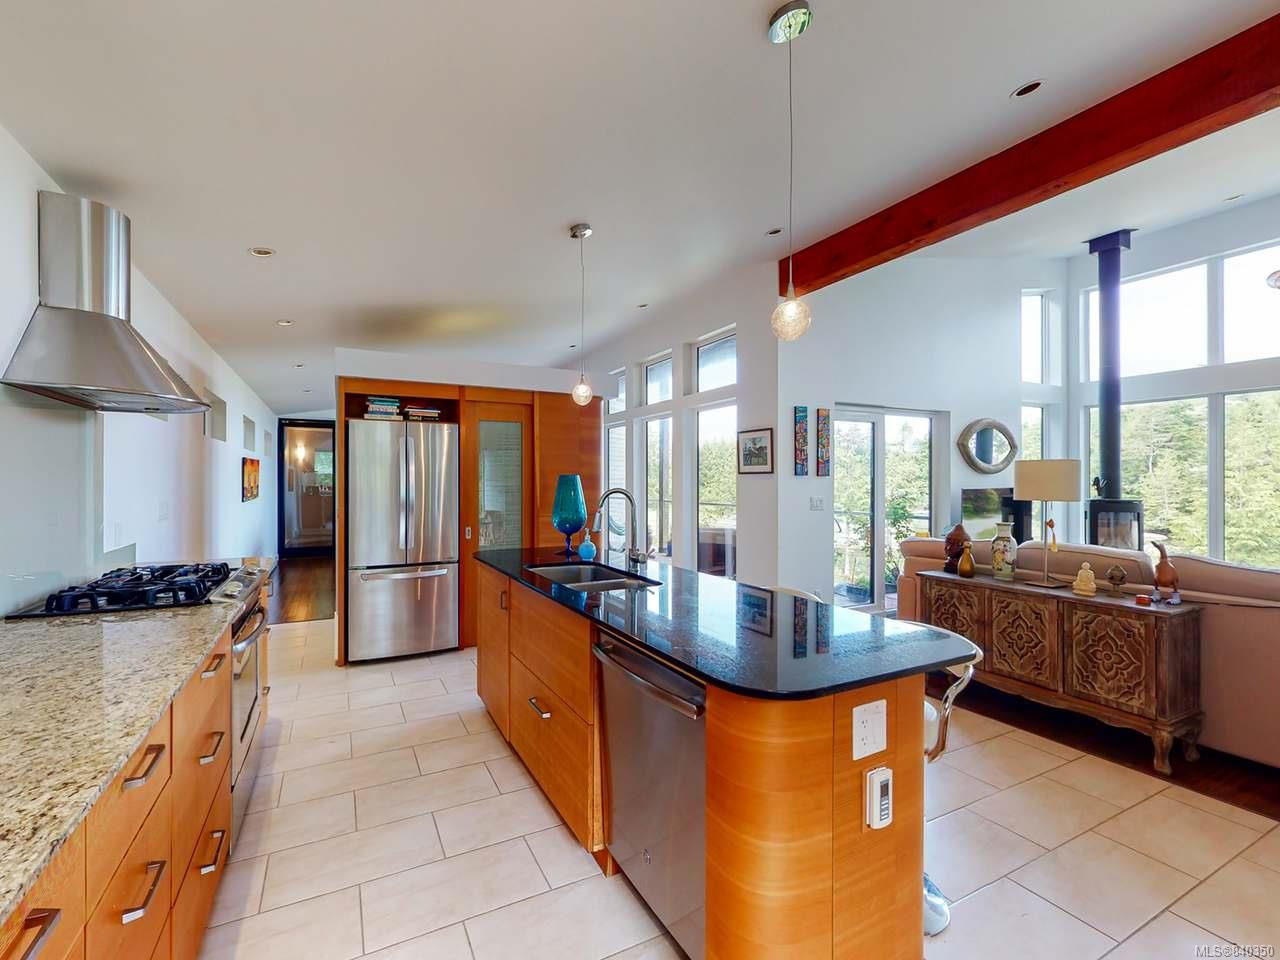 Photo 10: Photos: 1068 Helen Rd in UCLUELET: PA Ucluelet House for sale (Port Alberni)  : MLS®# 840350